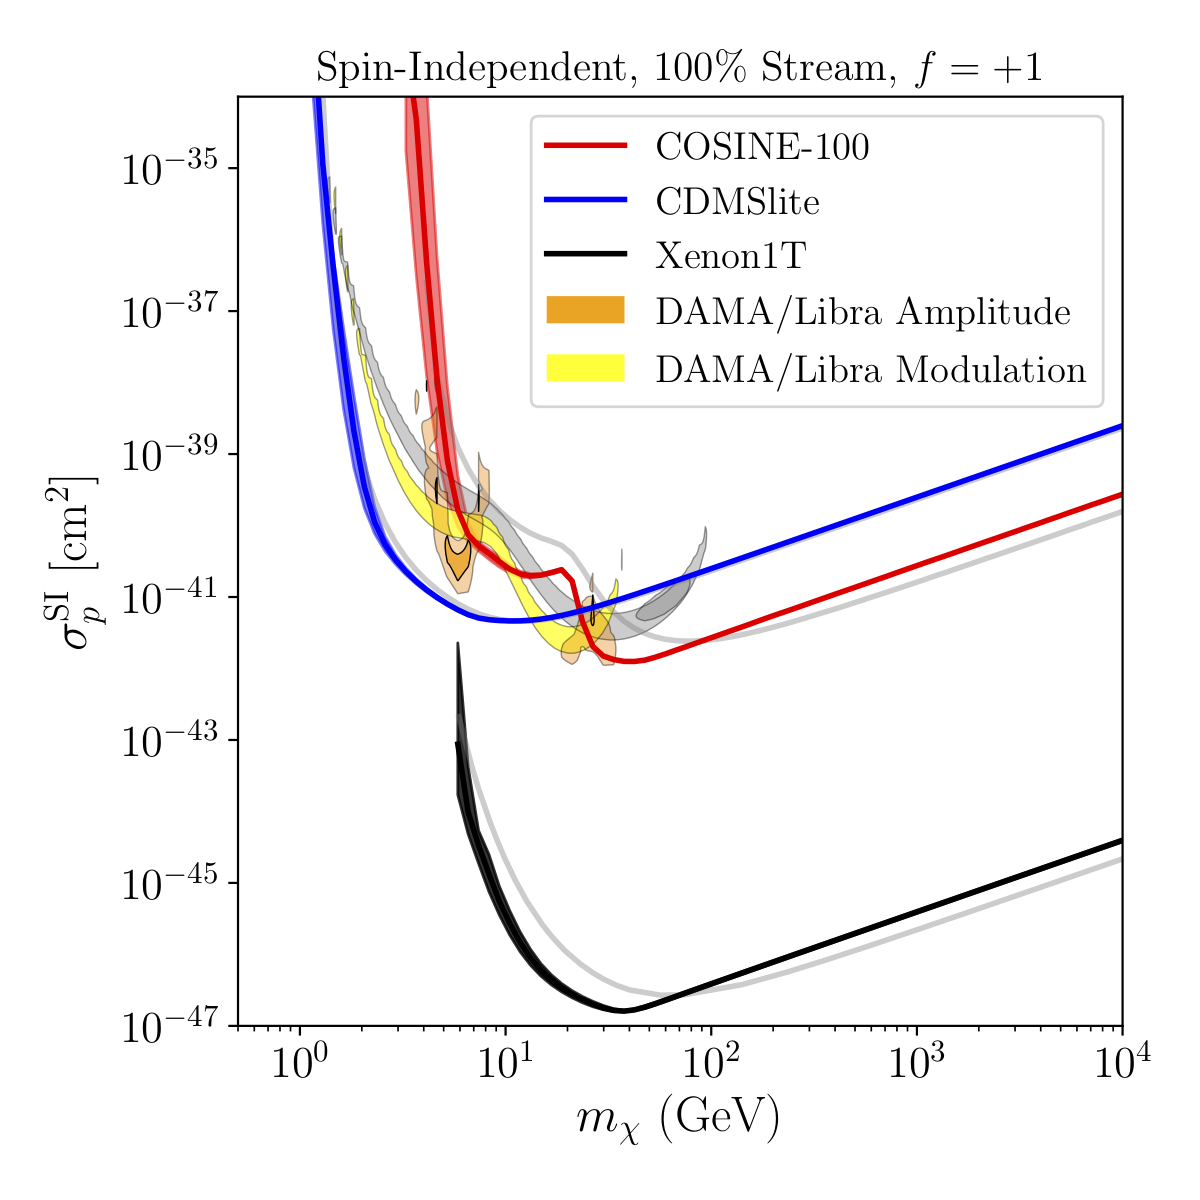 Limits and Best-fit regions assuming 100% of local dark matter is in the S1 stream and spin-independent Elastic scattering.